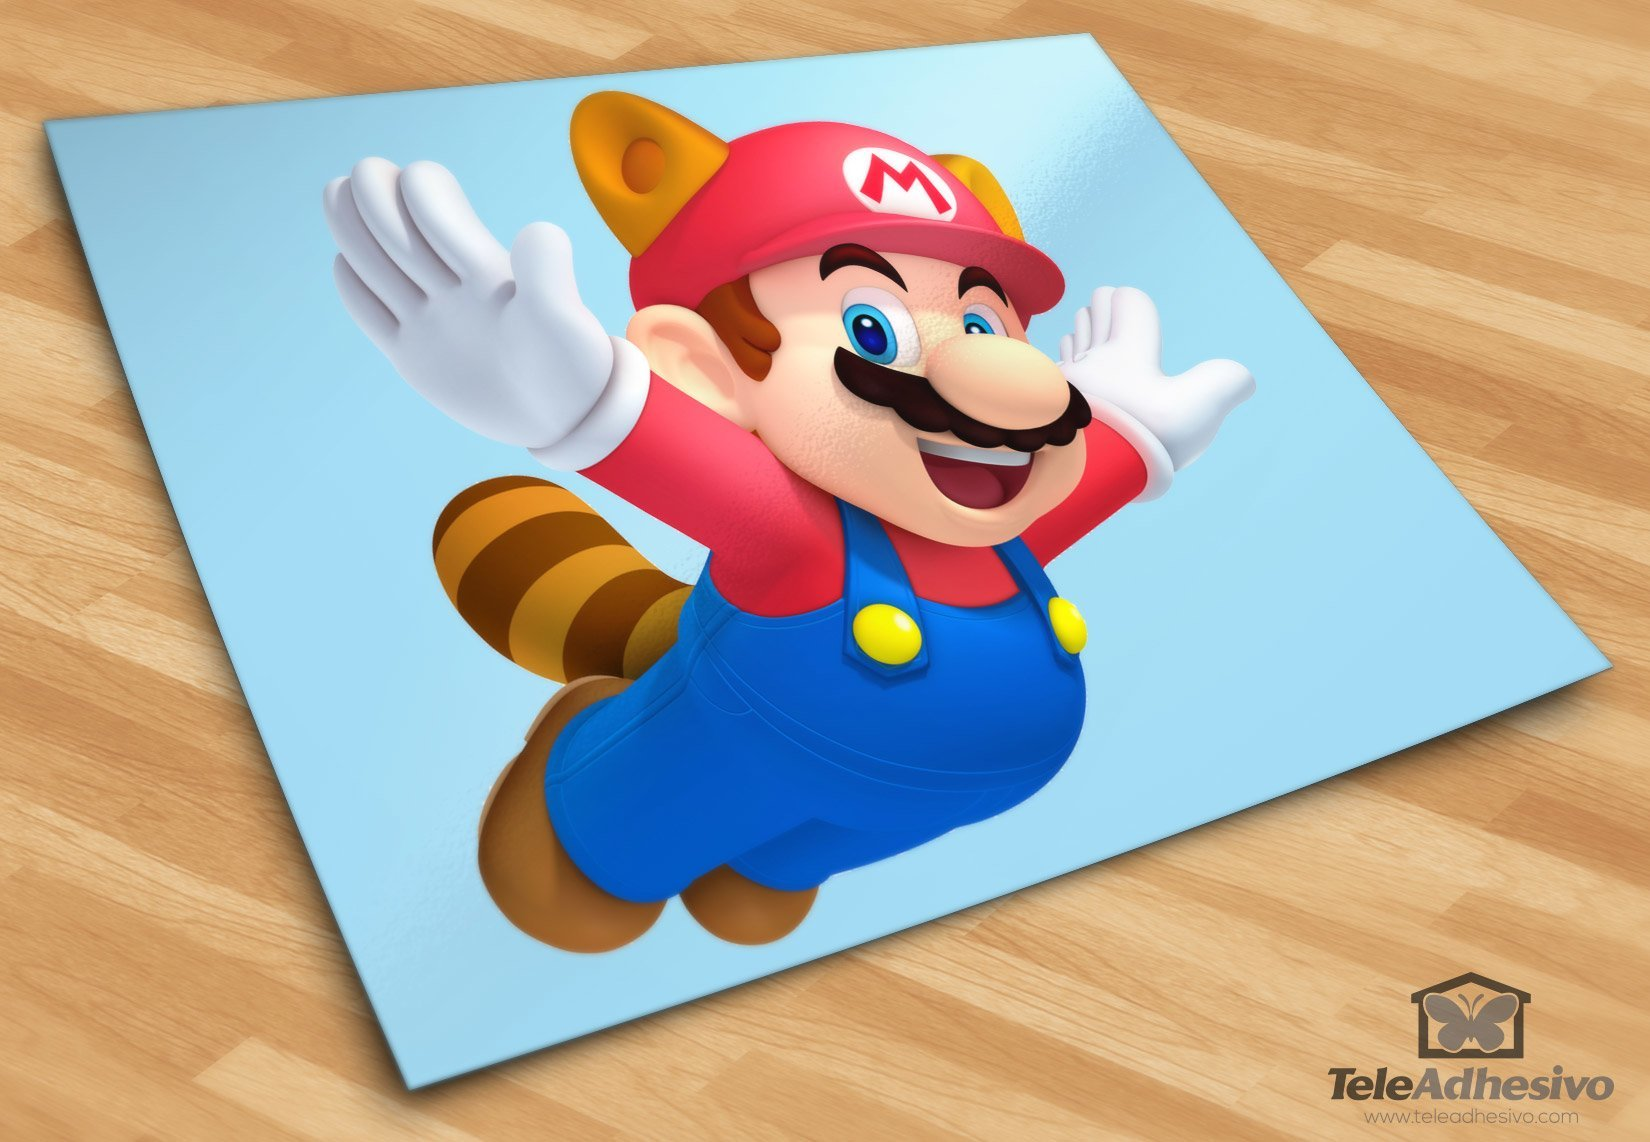 Kinderzimmer Wandtattoo: Super Mario Bross 3